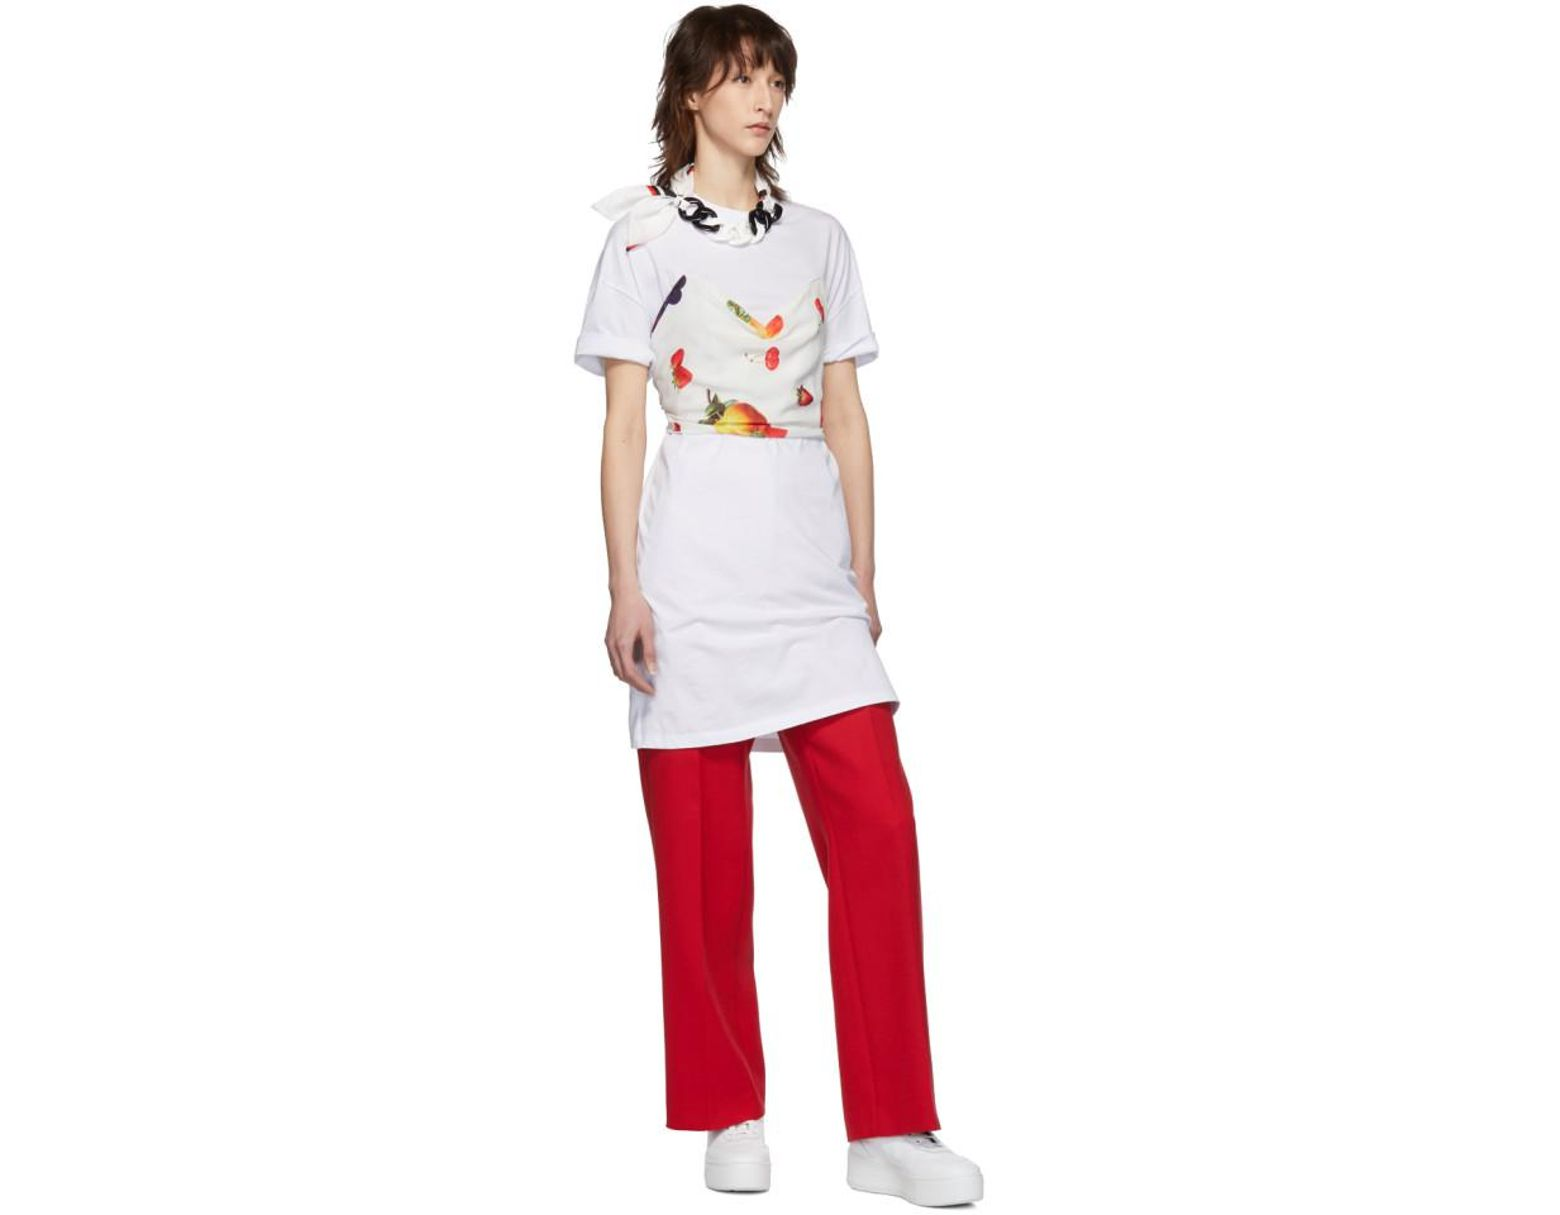 94dab9fd8856 MSGM Ssense Exclusive White Fruit Scarf T-shirt Dress in White - Lyst